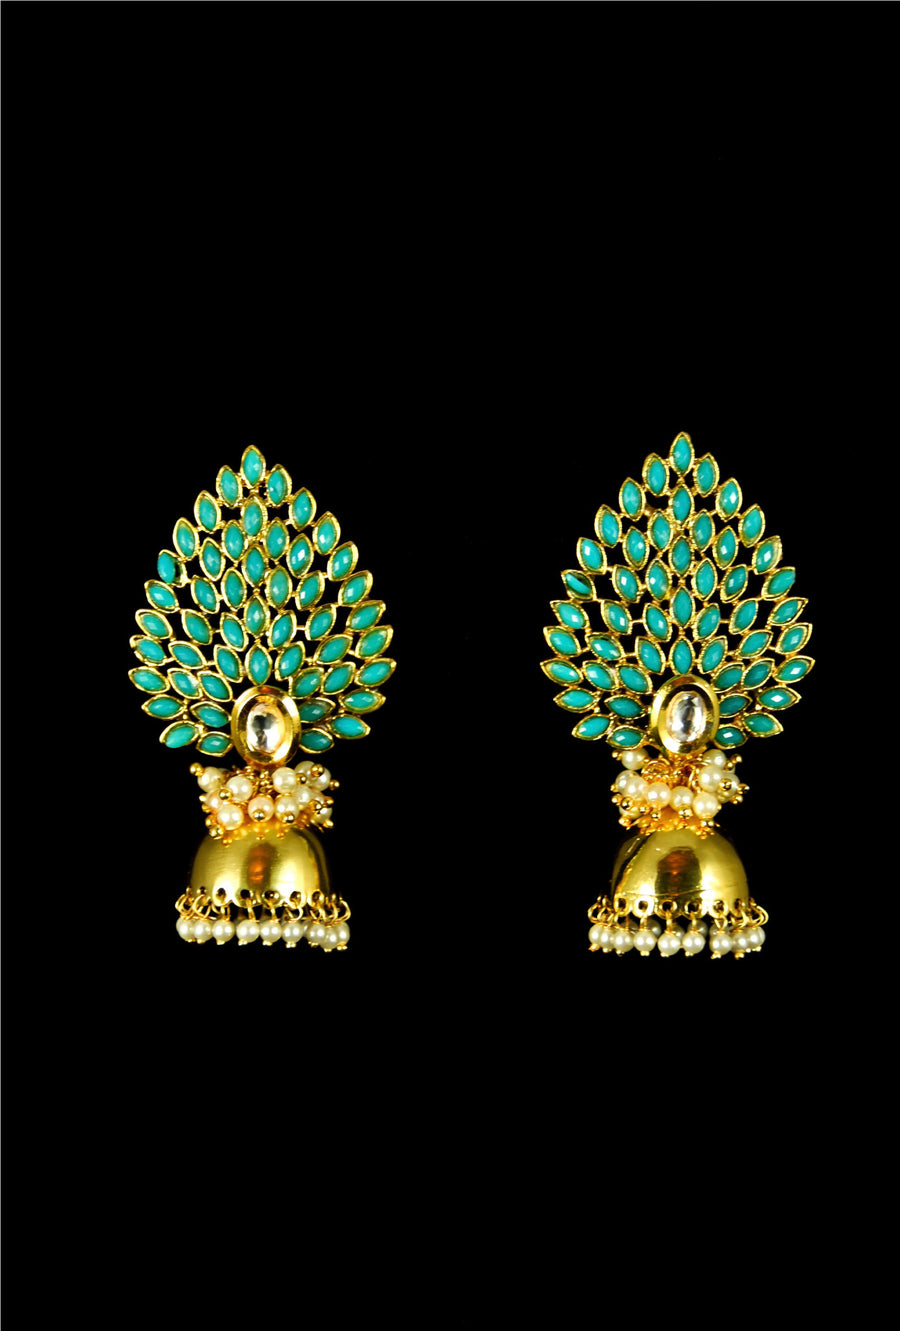 Ethnic mor pankh jhumki earrings - Desi Royale